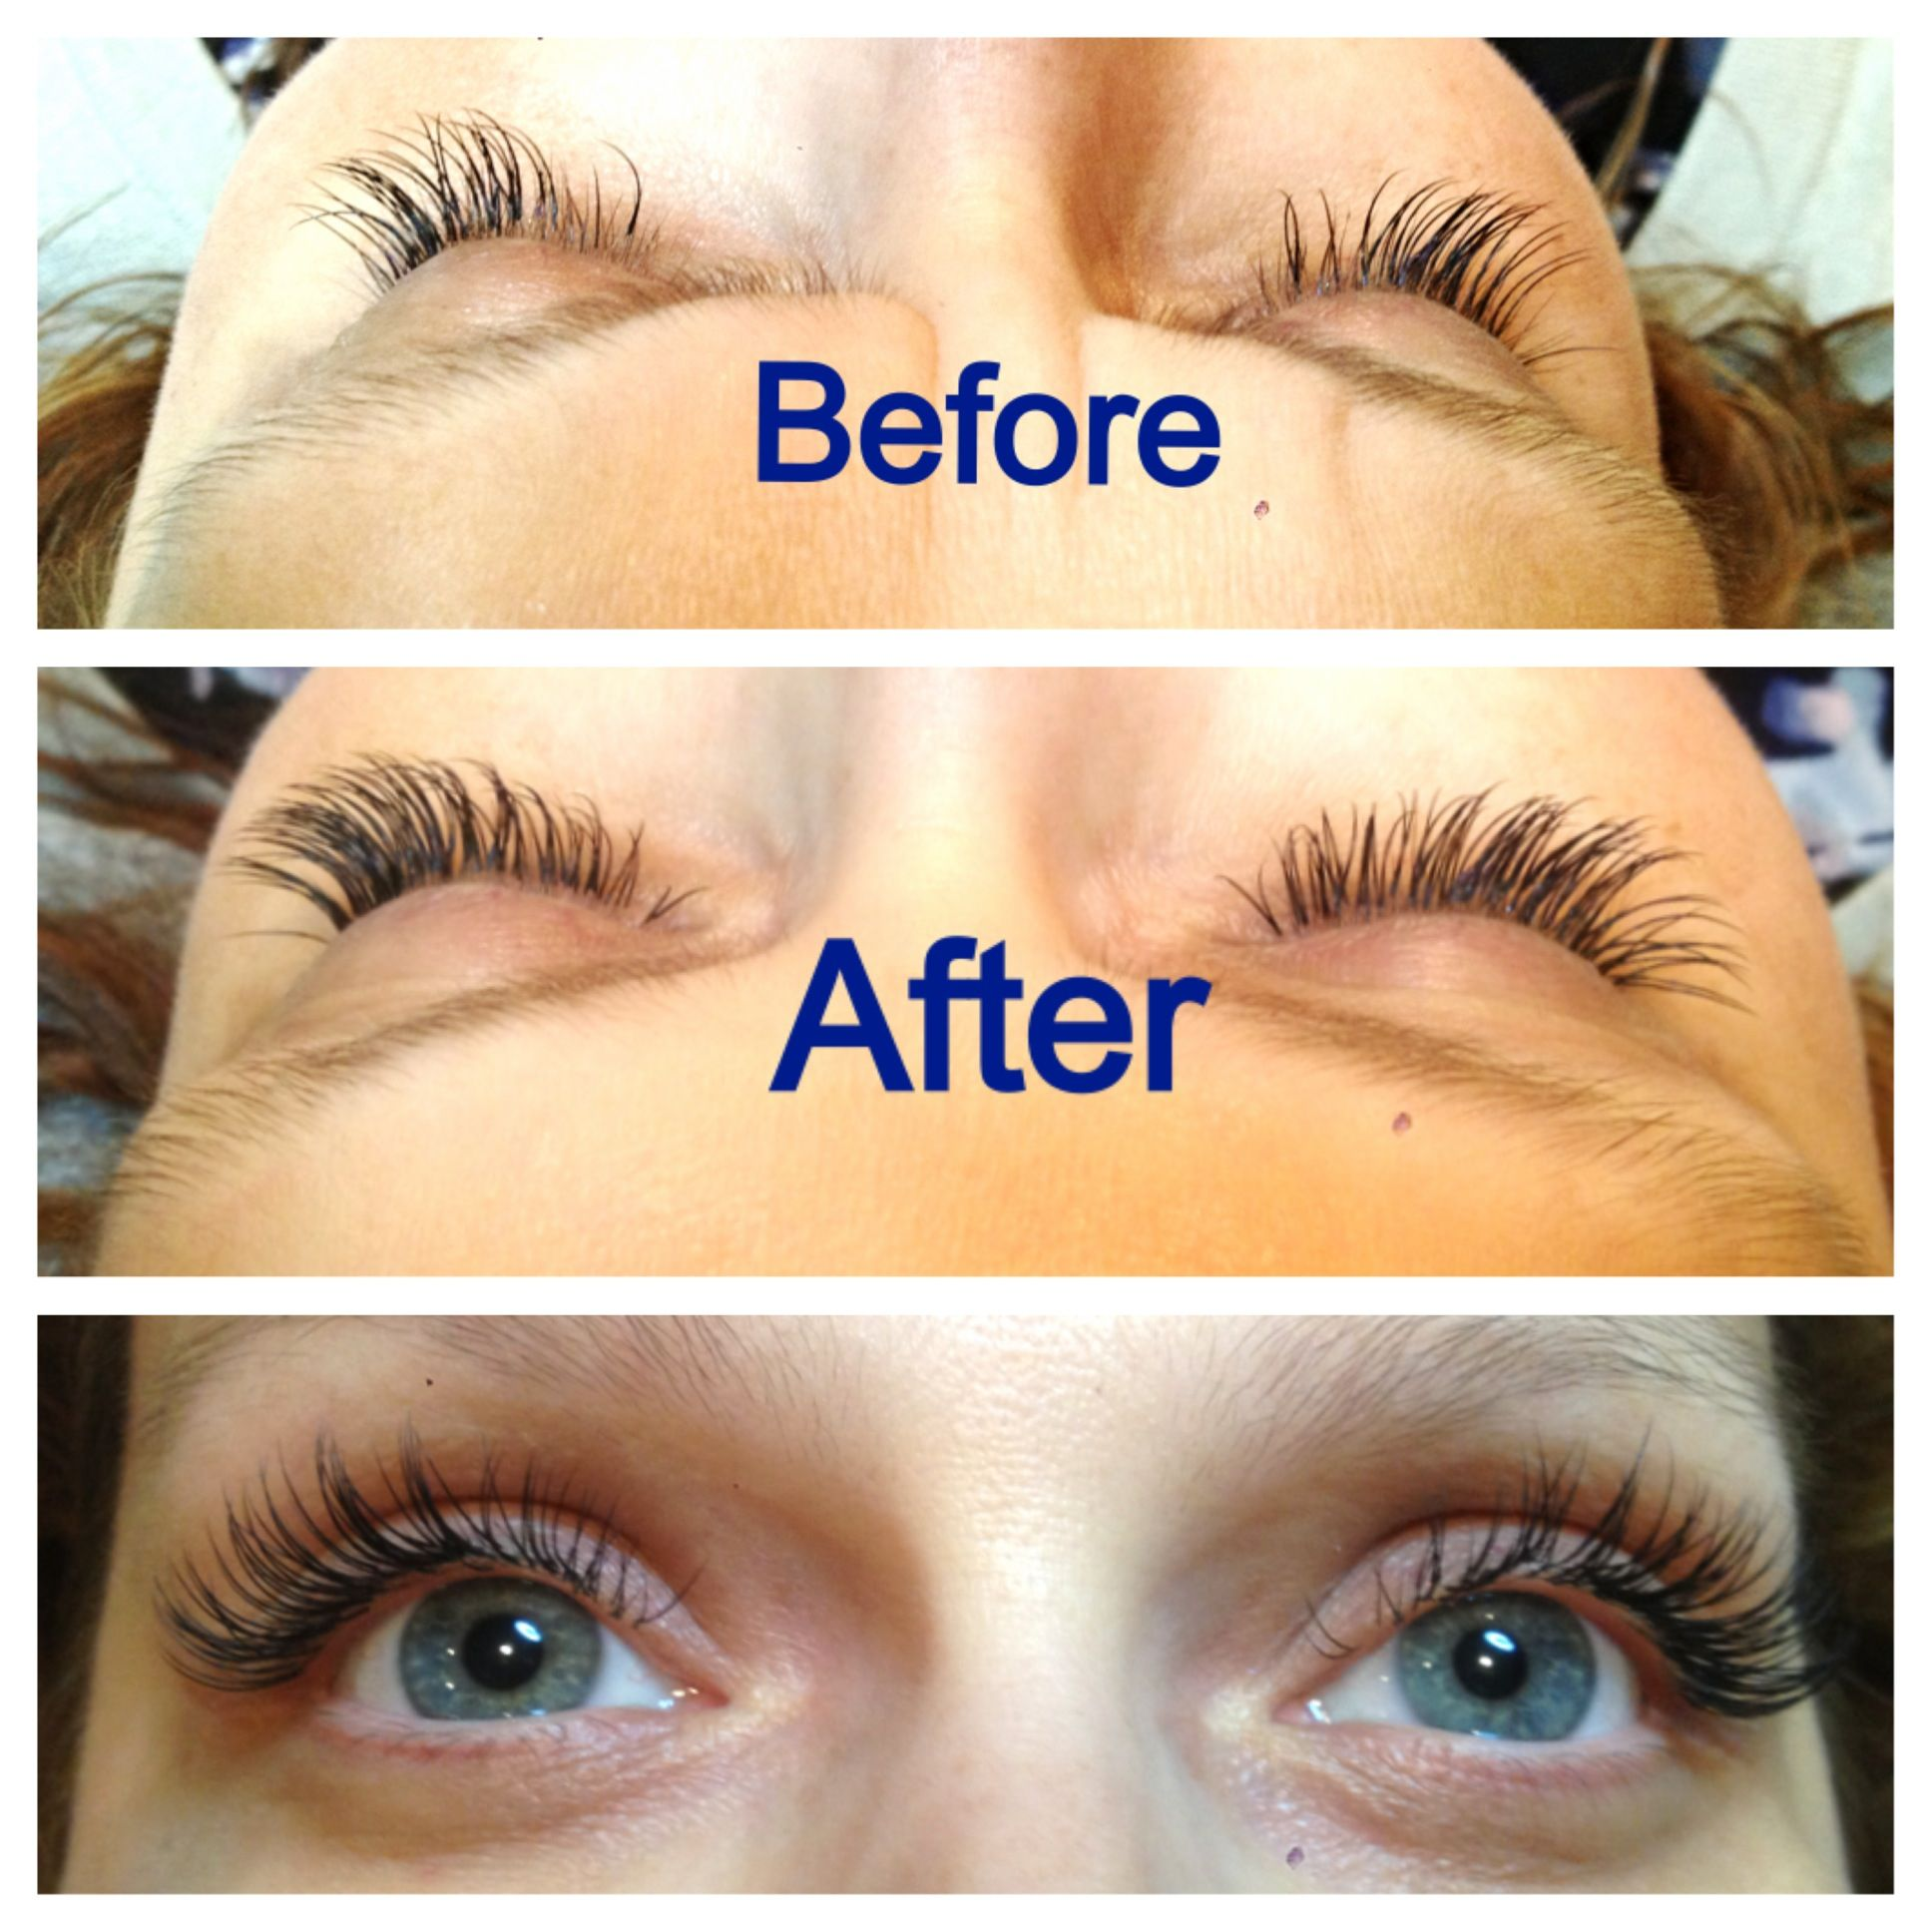 Xtreme Lashes Eyelash Extensions 2 Week Fill By Merry At Www